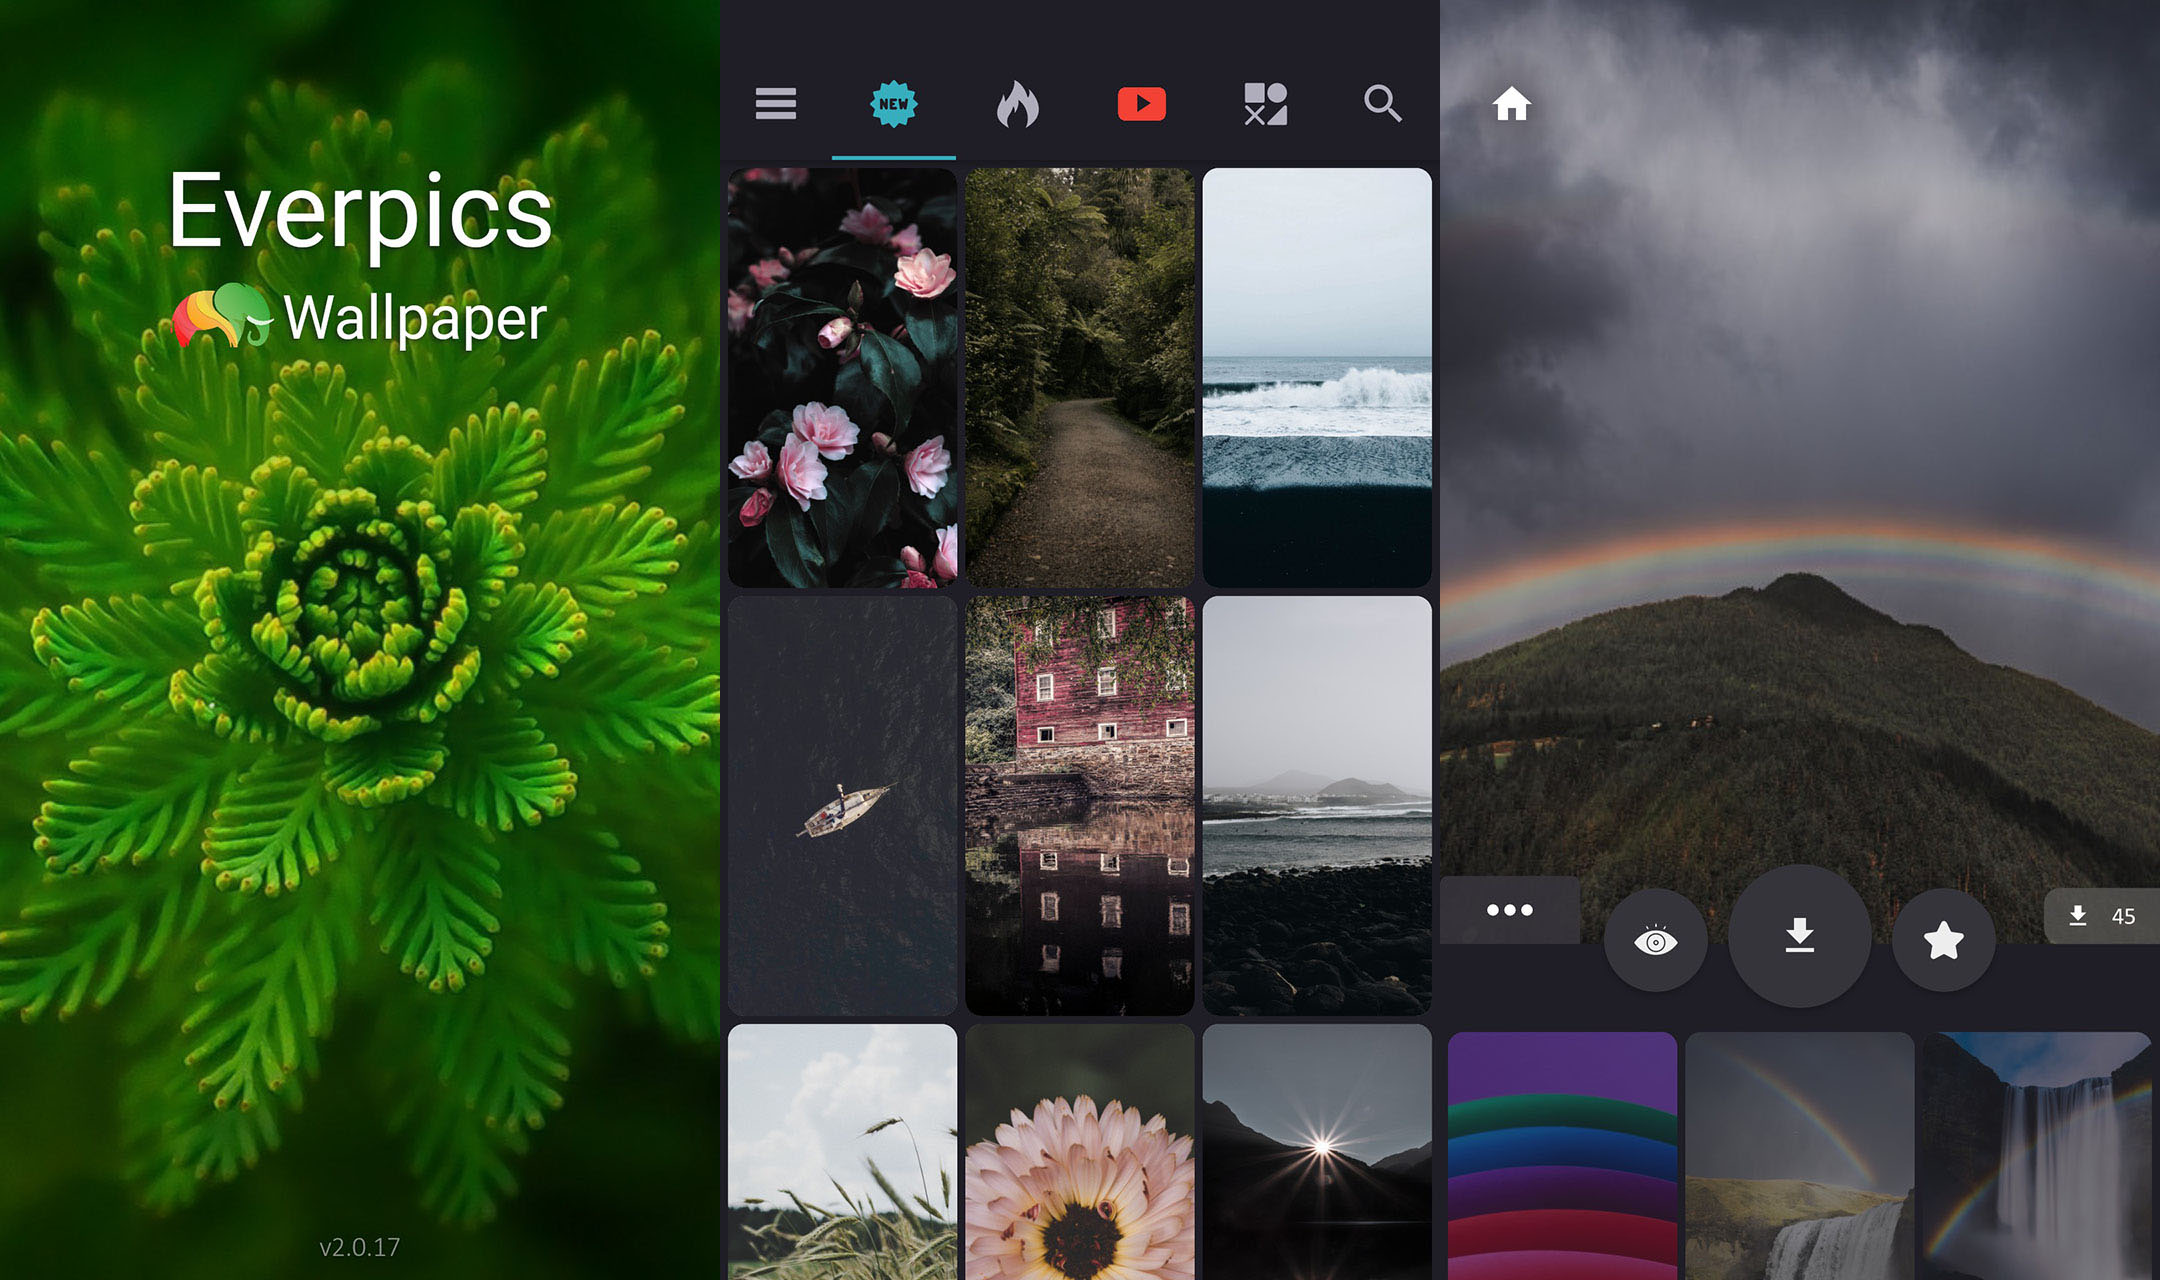 Download Everpics Wallpapers 4K & Live 3.0.5 for Android free